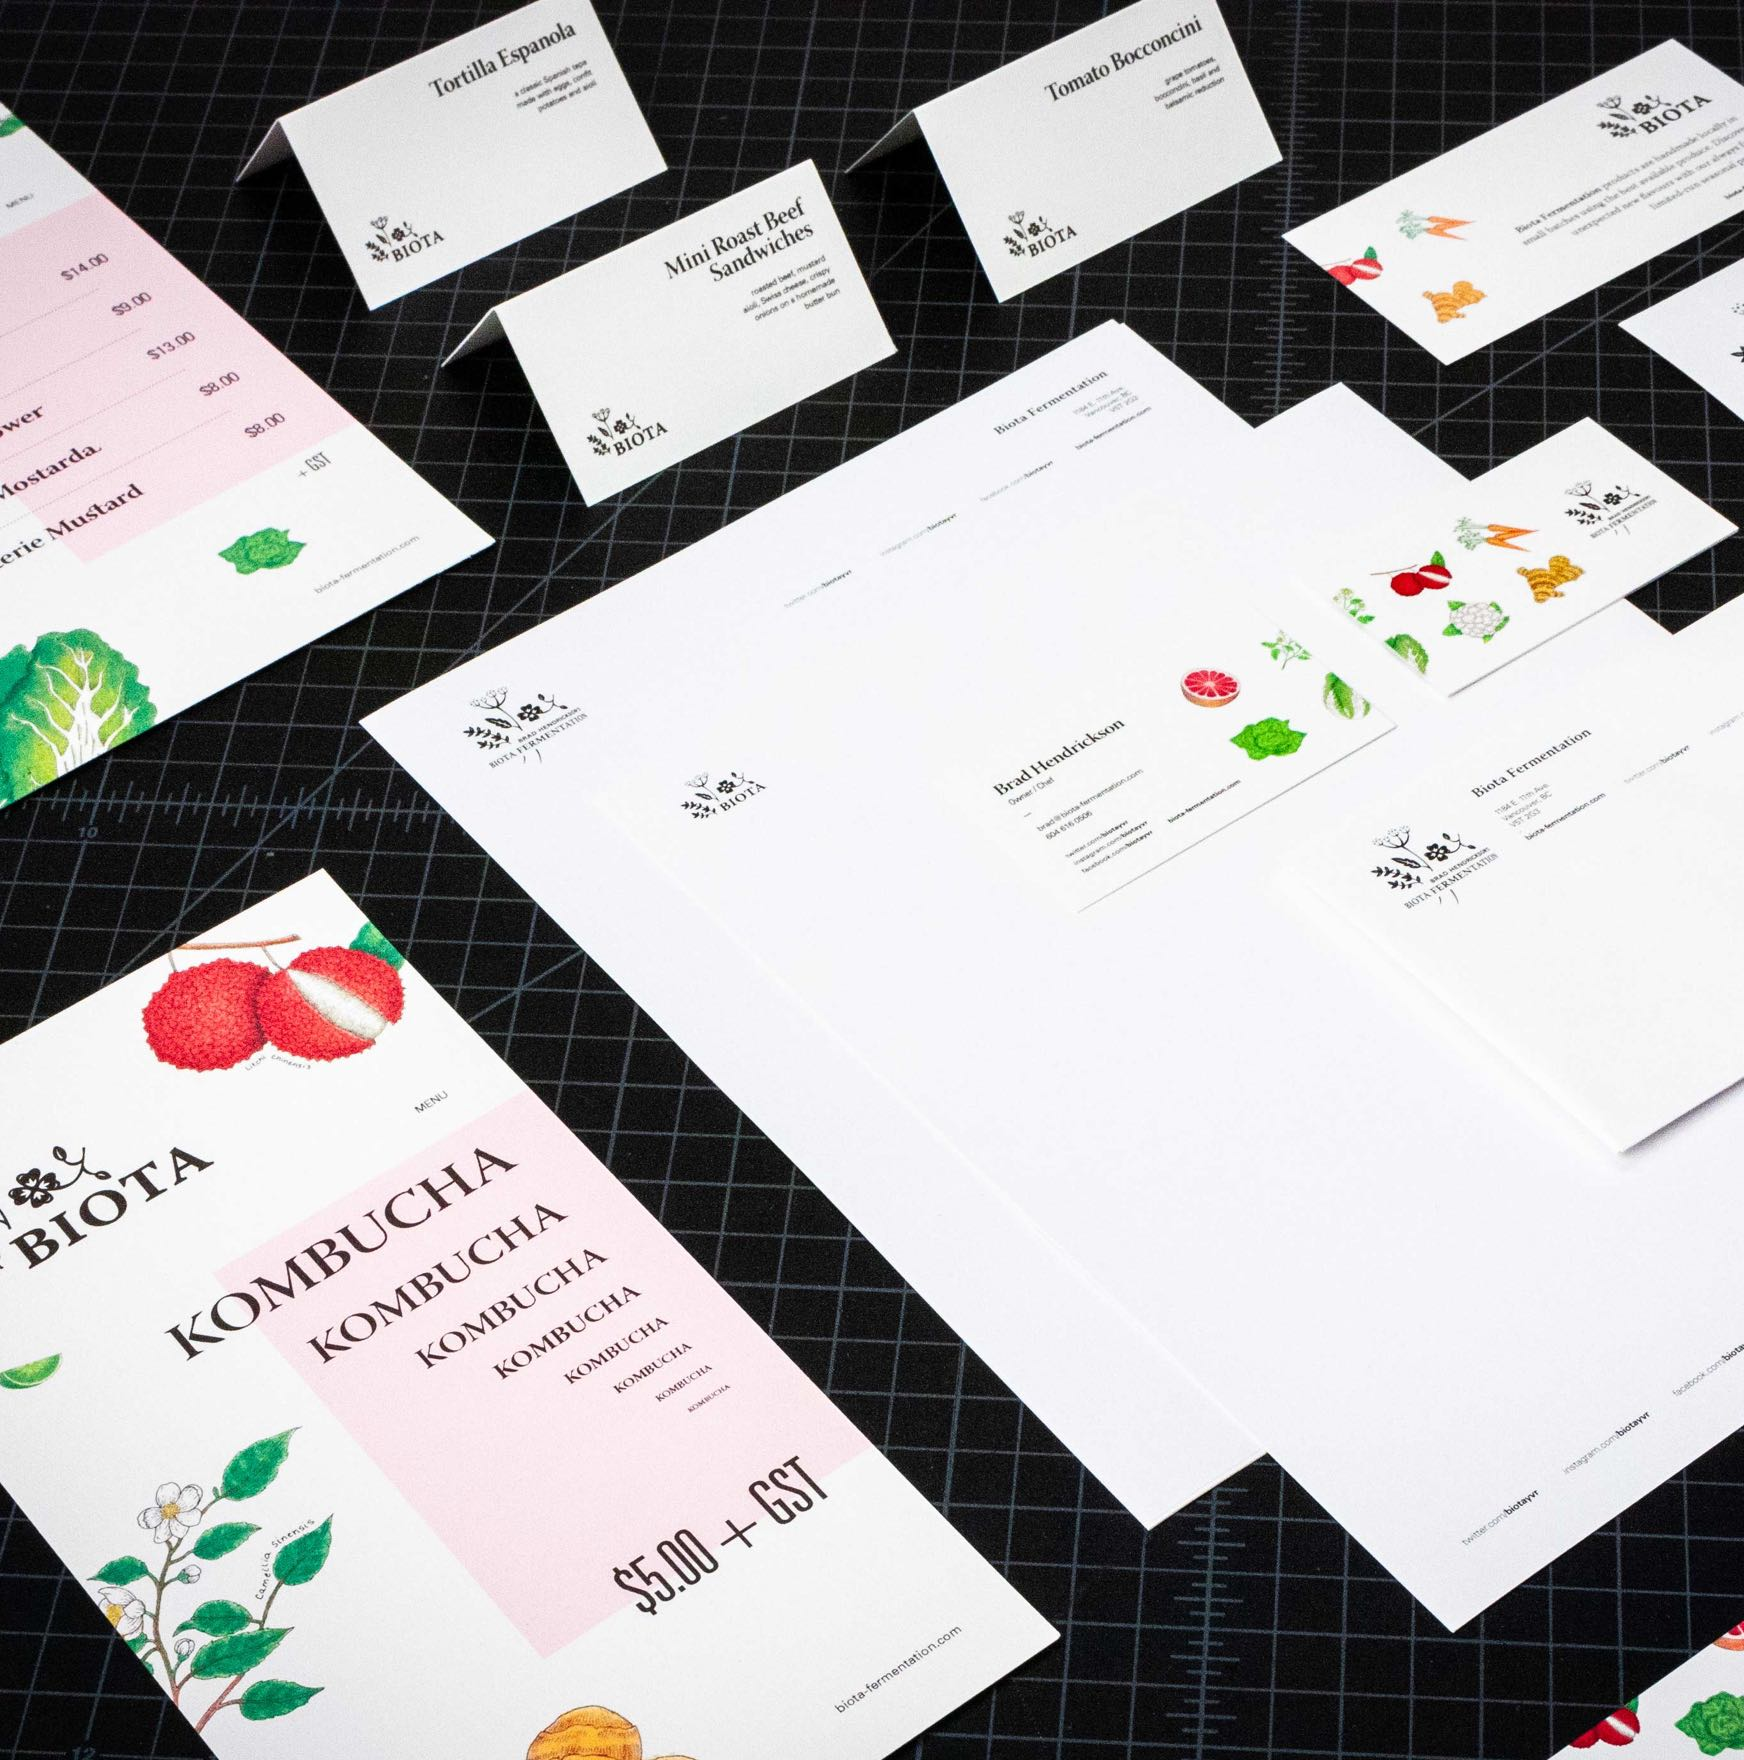 Biota Fermentation stationary, menus,, business card, and product cards featuring vibrant botanical illustrations by Jessica Fraser — by Yagnyuk.